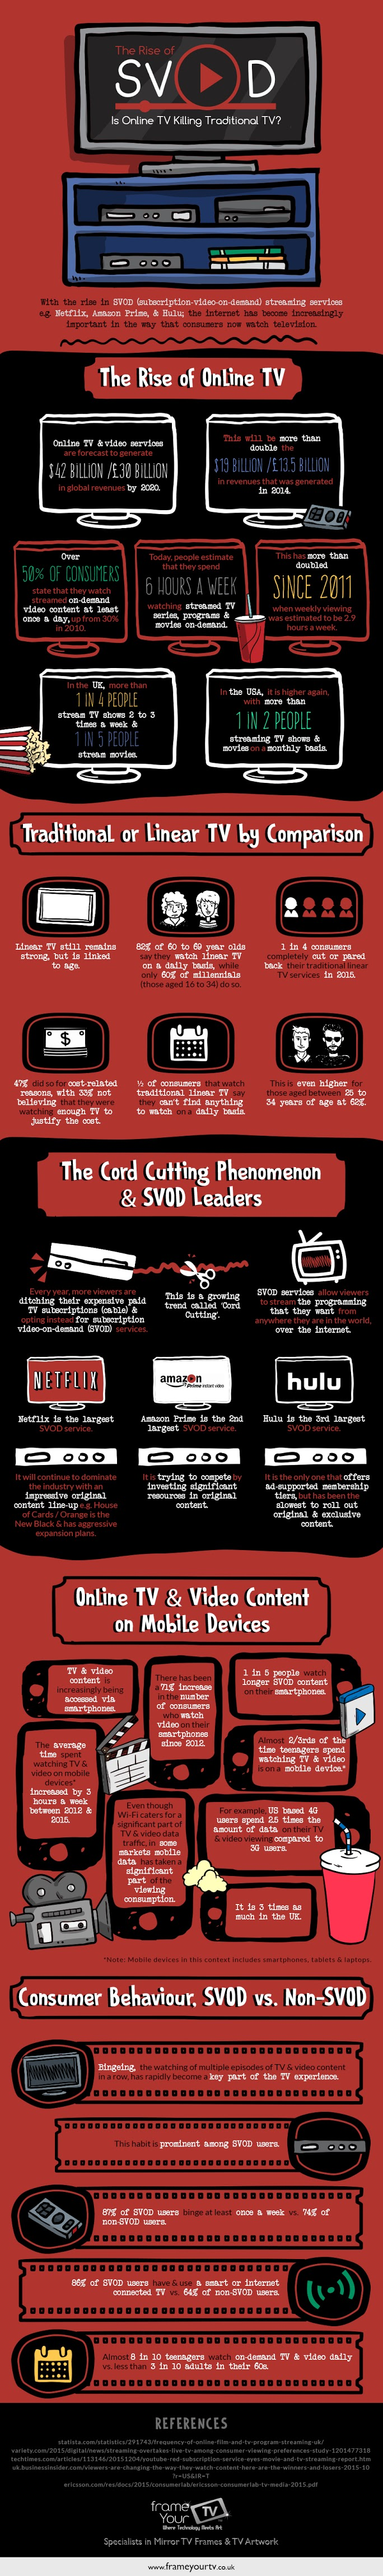 Image of SVOD which stands for subscription-video-on-demand, the most popular ways of watching TV by digital means, Netflix, Amazon Prime Instant Video and Hulu, watch streamed and on-demand content, infographic Digital Television and the Rise of SVOD, Frame Your TV